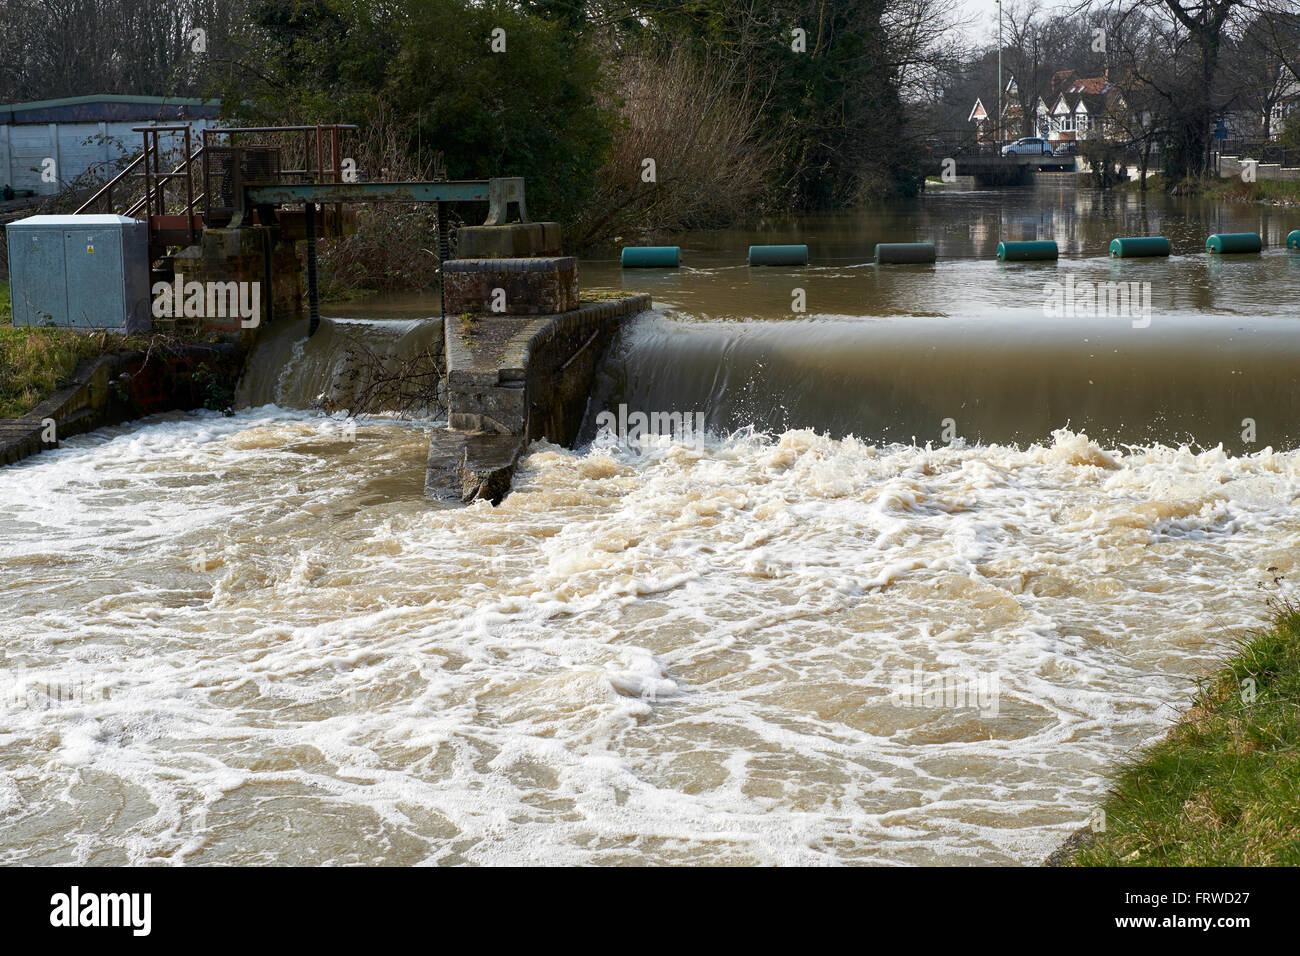 Floodwater flowing over a weir and gauging station on the River Great Ouse, Bedford, Bedfordshire, United Kingdom. Stock Photo